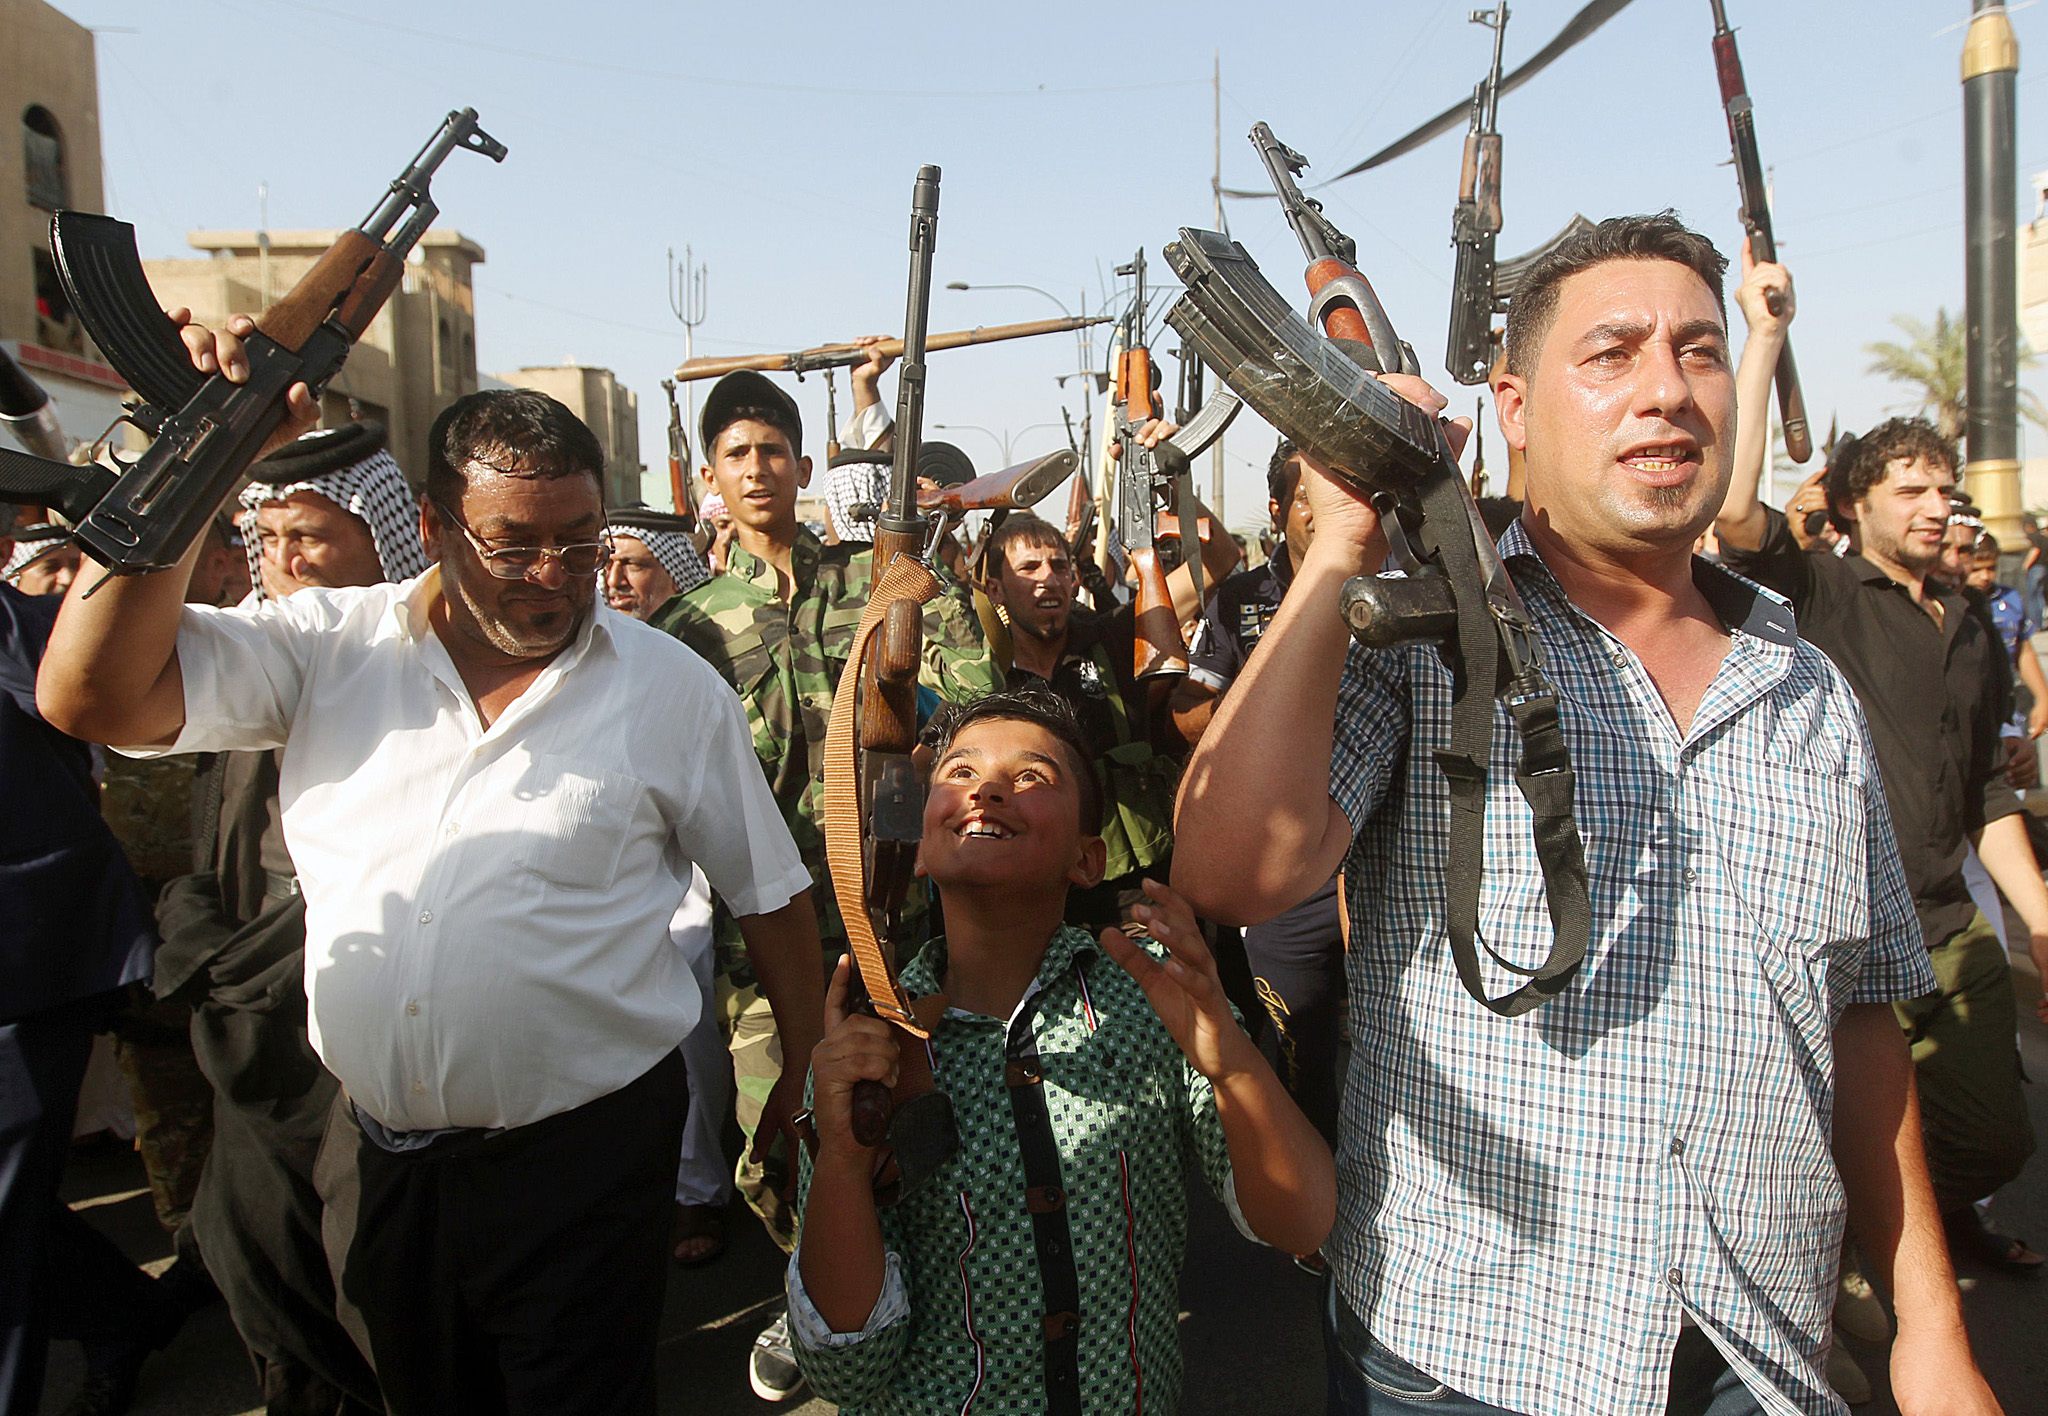 TOPSHOTS A Iraqi young boy and tribesmen...TOPSHOTS A Iraqi young boy and tribesmen hold up their weapons as they gather to show their readiness to join Iraqi security forces in the fight against Jihadist militants who have taken over several northern Iraqi cities on June 16, 2014 in the capital Baghdad. Faced with a militant offensive sweeping south toward Baghdad, Prime Minister Nuri al-Maliki announced the Iraqi government would arm and equip civilians who volunteer to fight, and thousands have signed up.   AFP PHOTO/AHMAD AL-RUBAYEAHMAD AL-RUBAYE/AFP/Getty Images